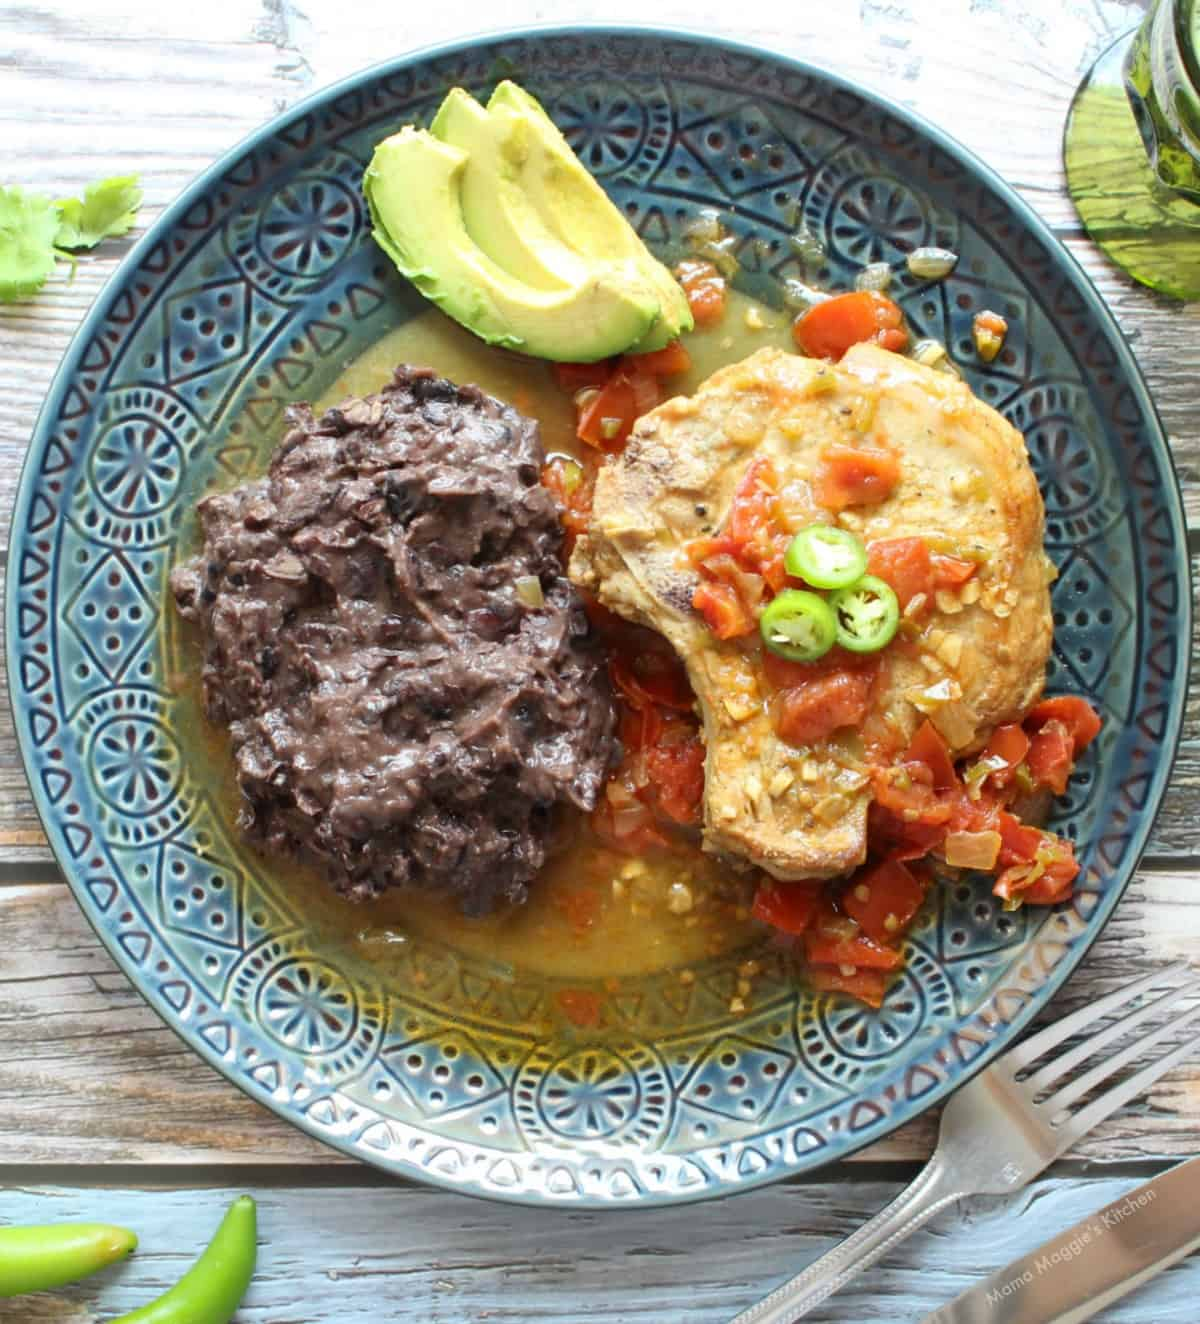 Mexican-Style Pork Chops served on a blue plate next to black beans and topped with serrano pepper slices.